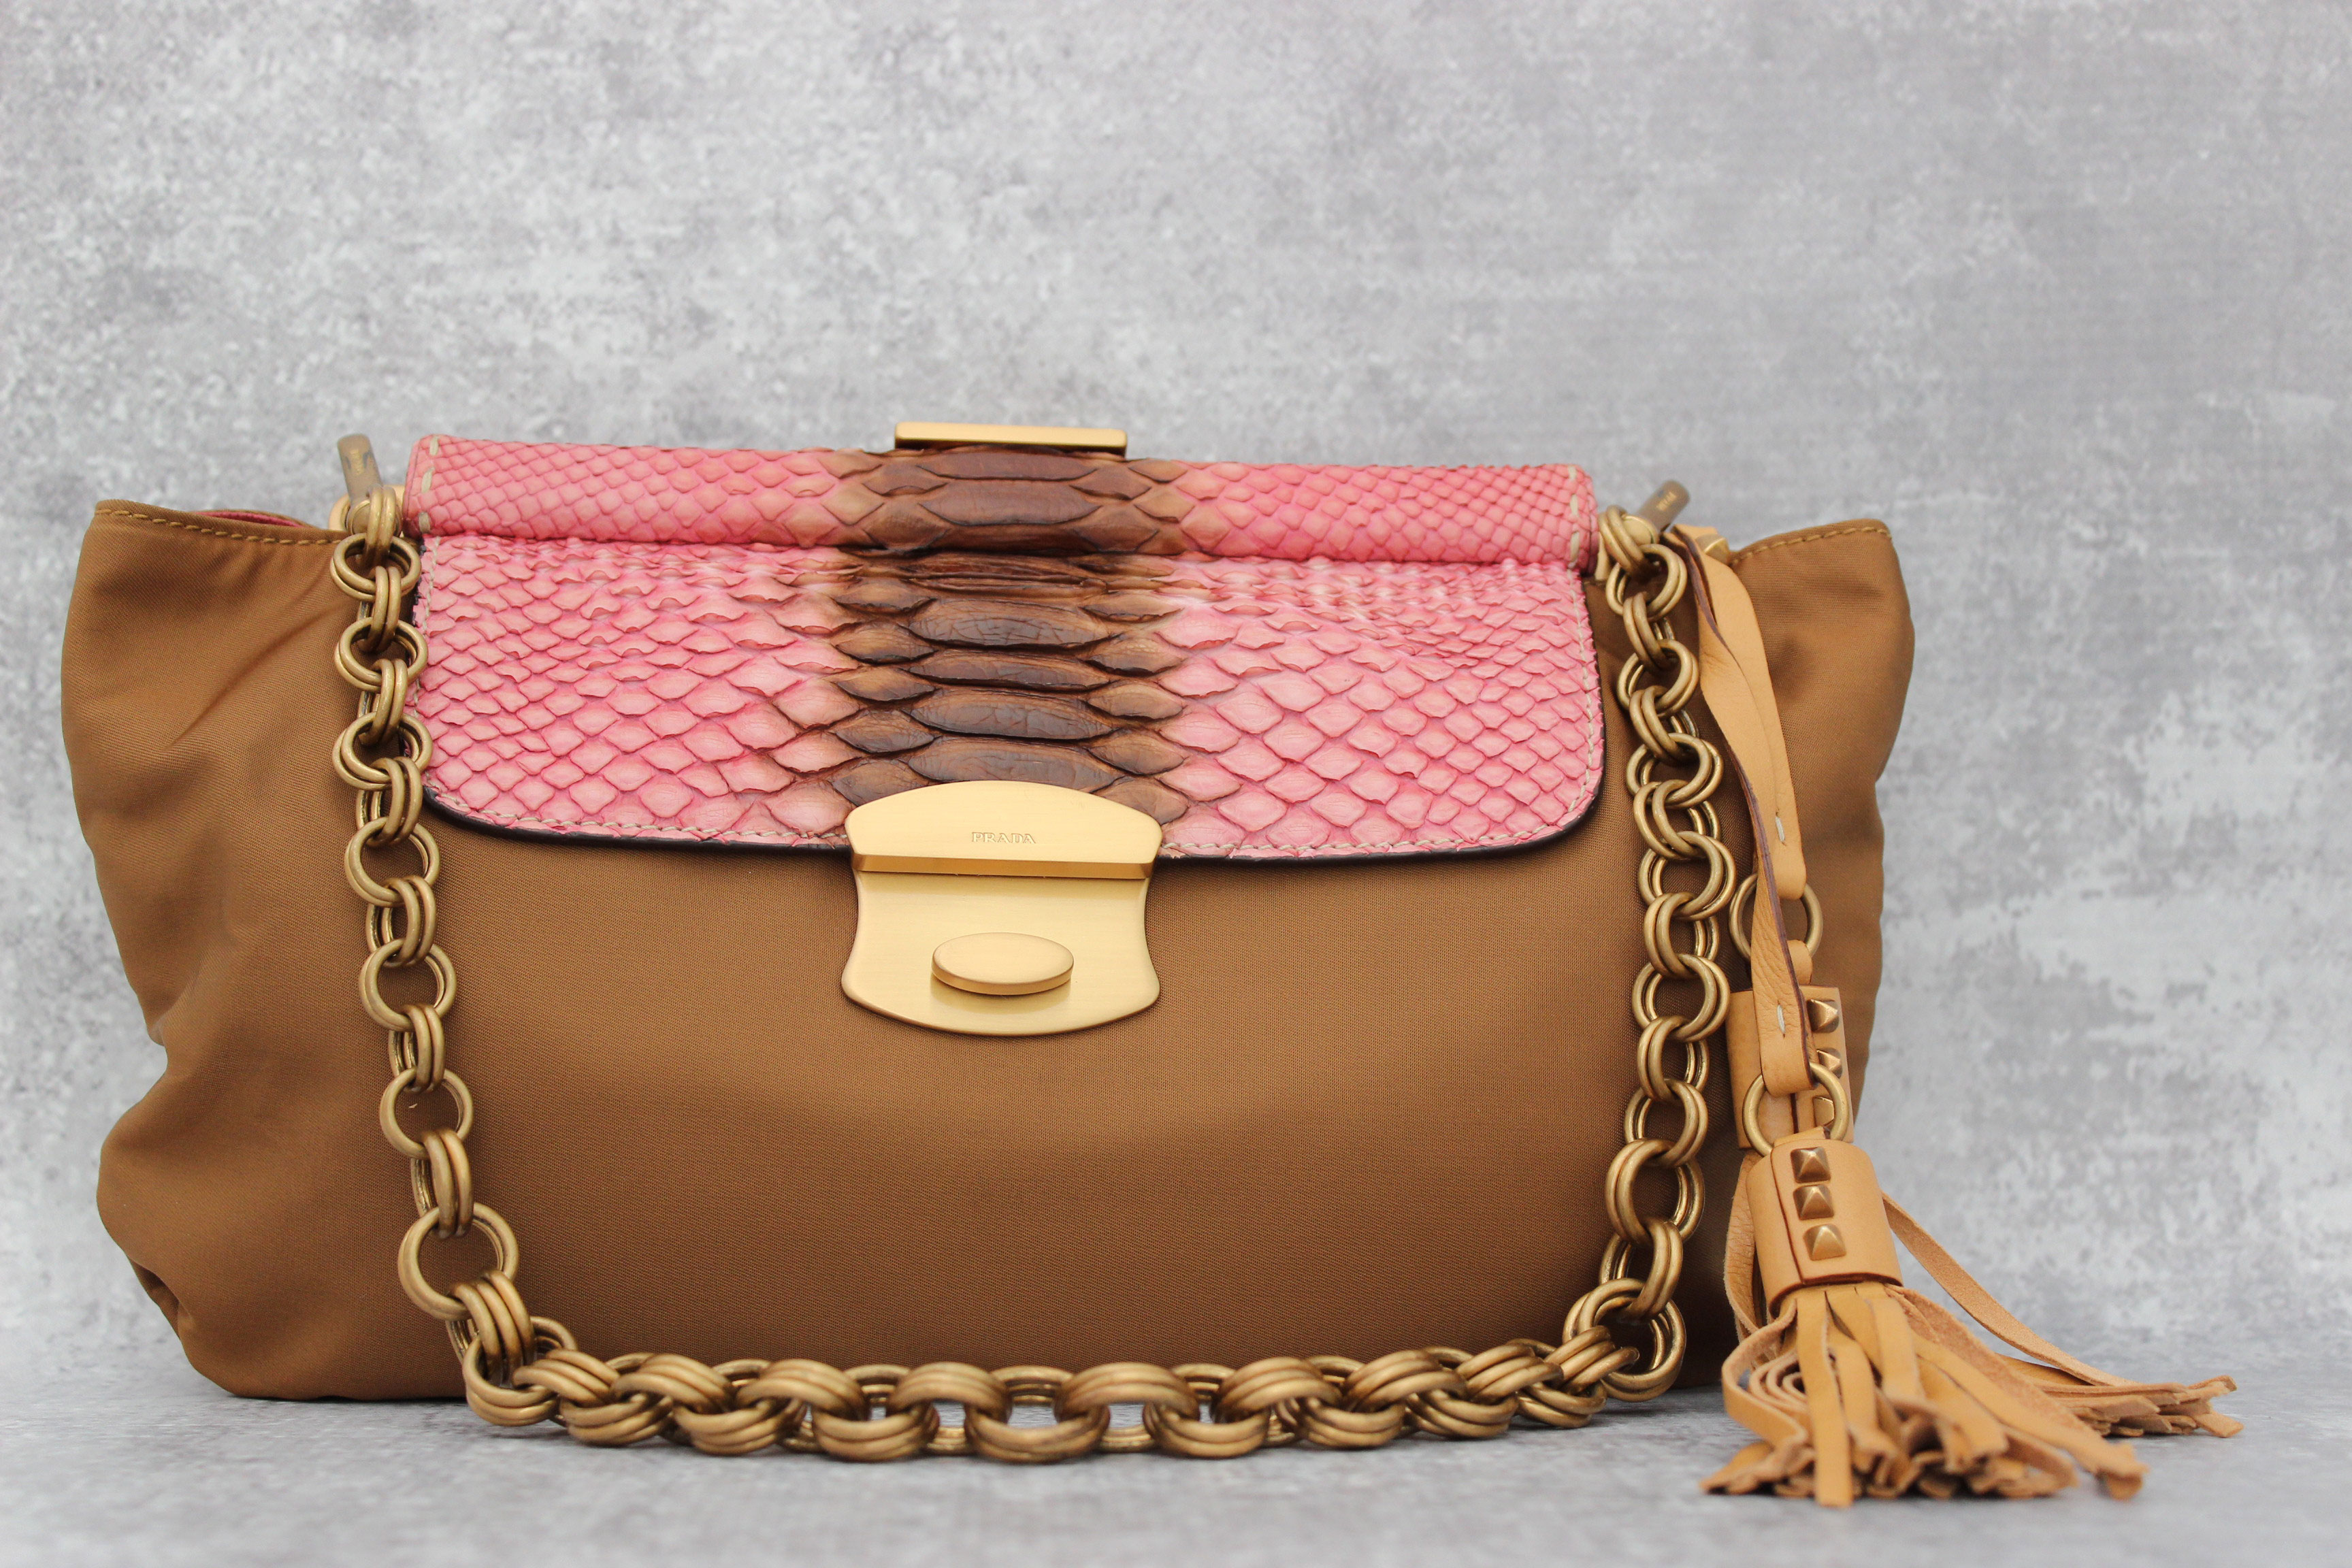 285830a190ee6f Prada Tessuto Nylon & Python Shoulder Bag at Jill's Consignment